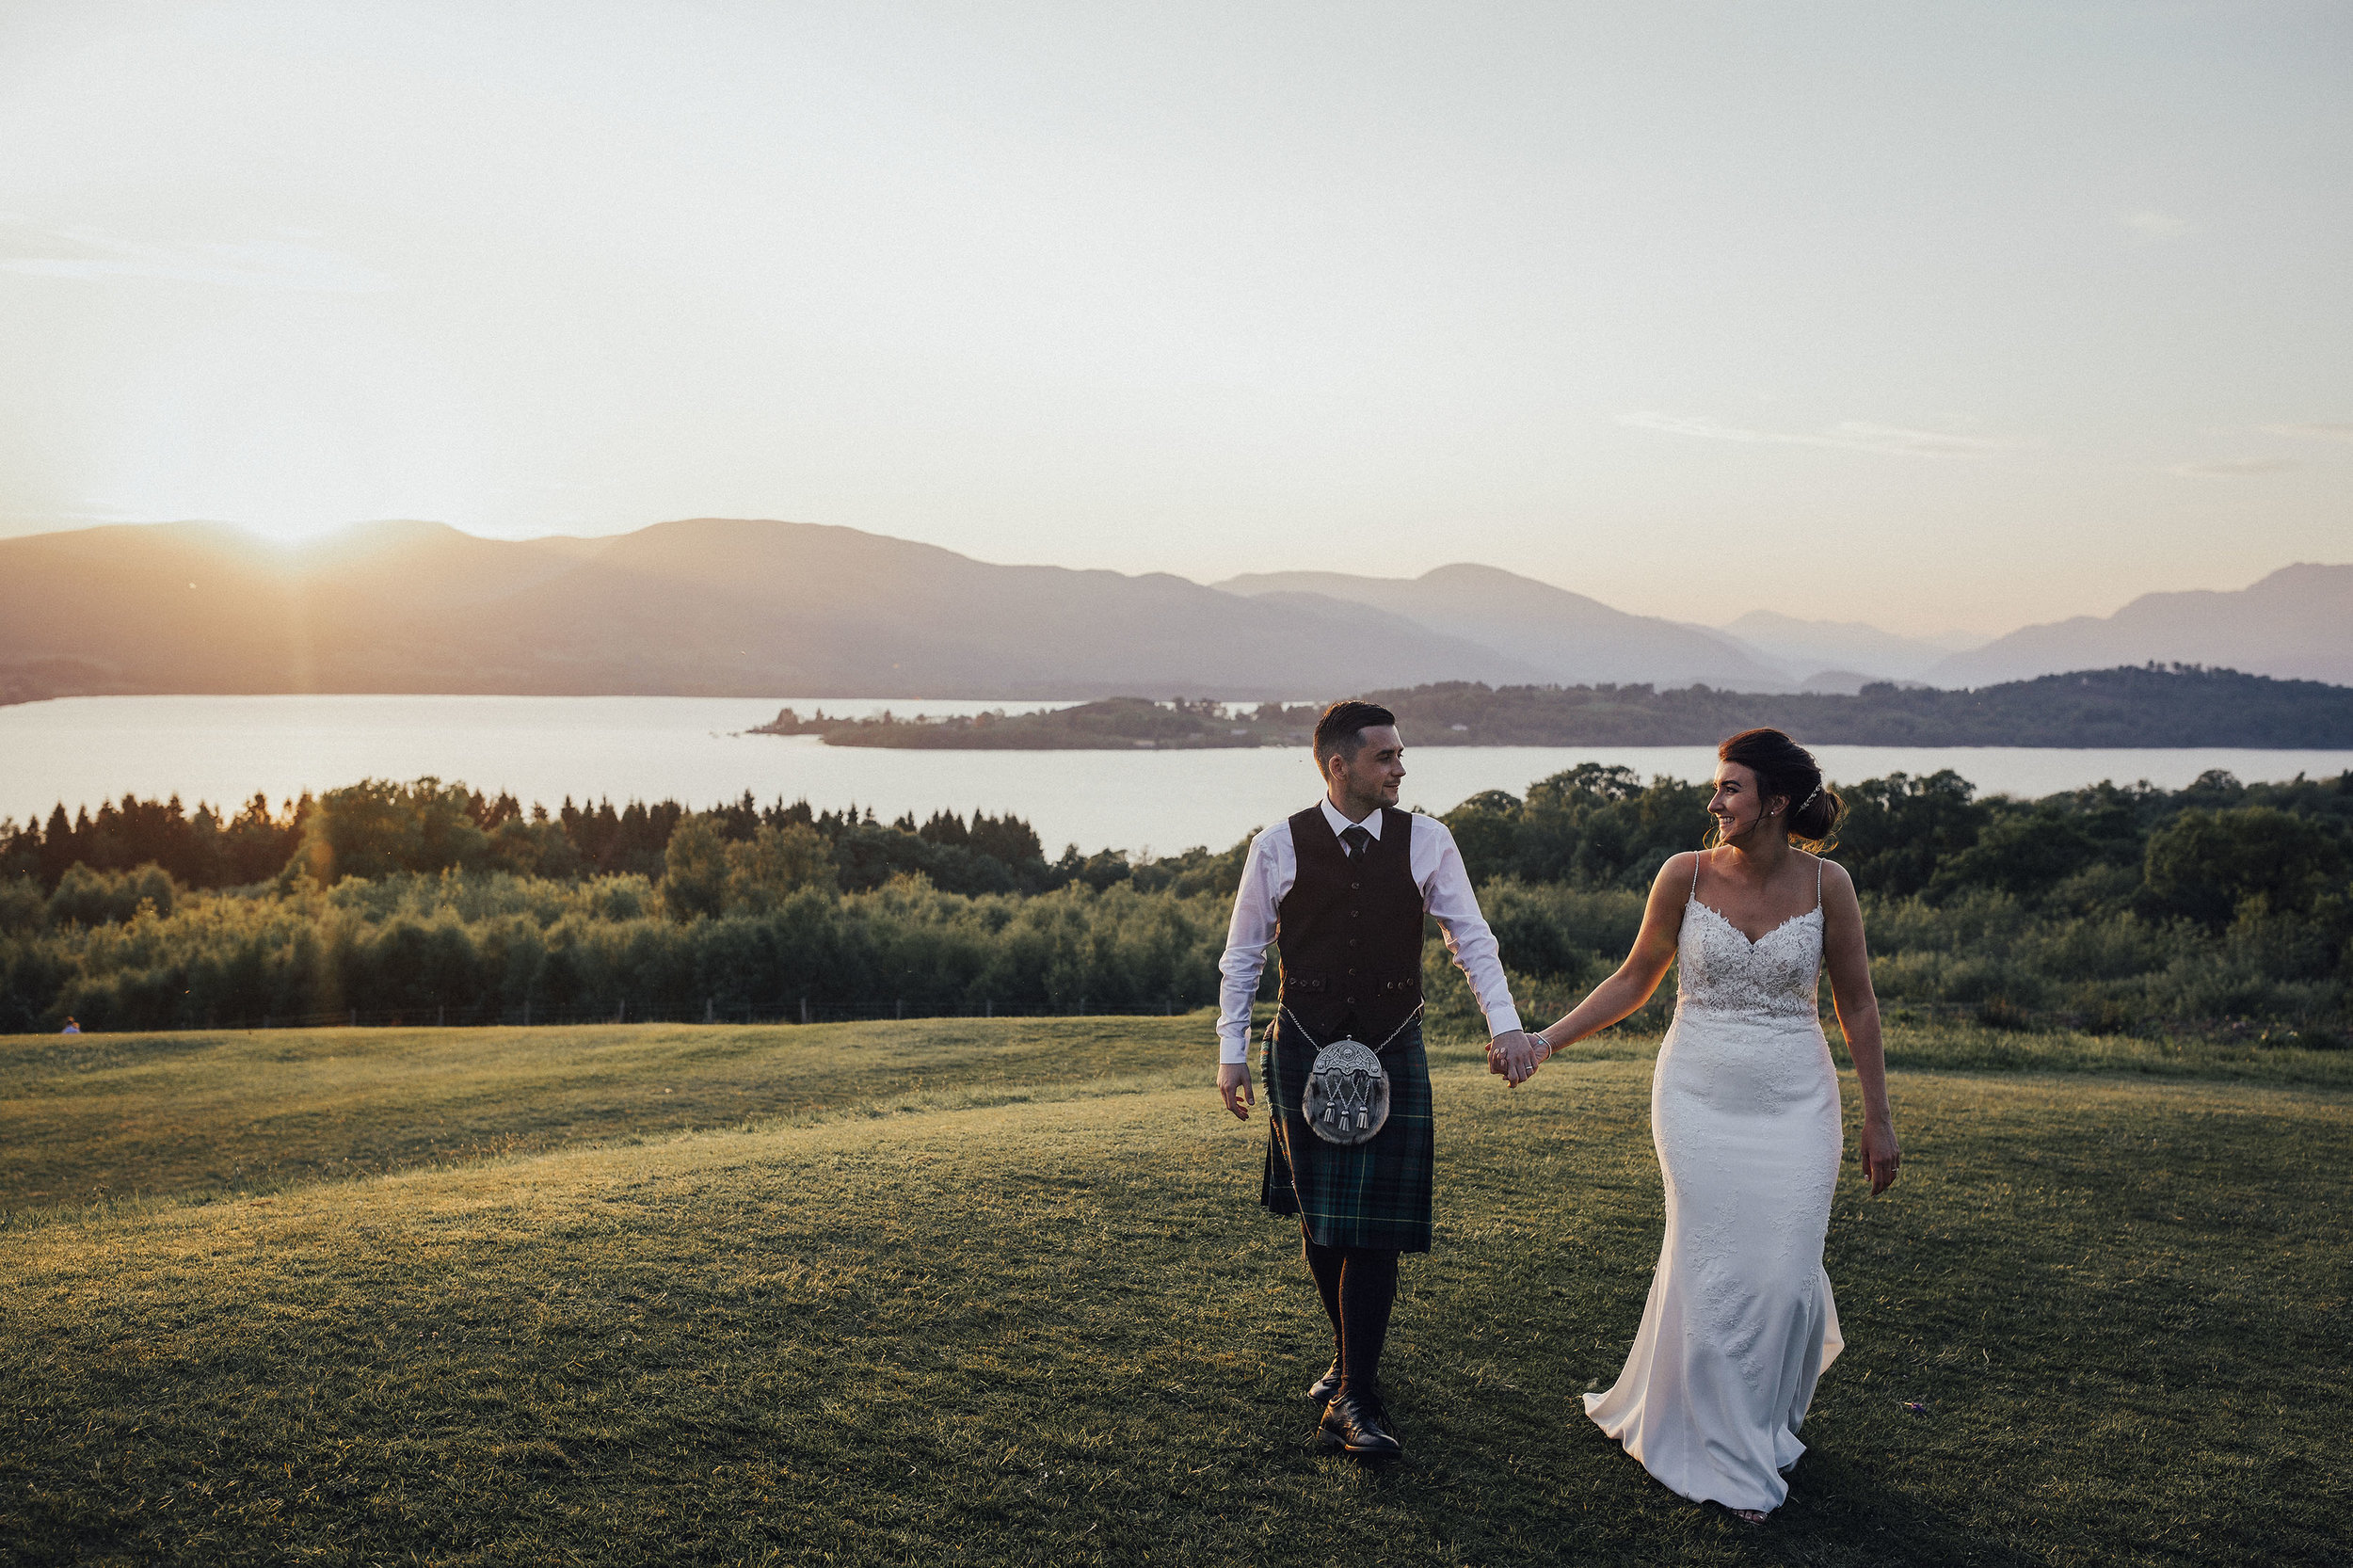 PJ_PHILLIPS_PHOTOGRAPHY_2018_SCOTLAND_WEDDING_PHOTOOGRAPHER_257.jpg